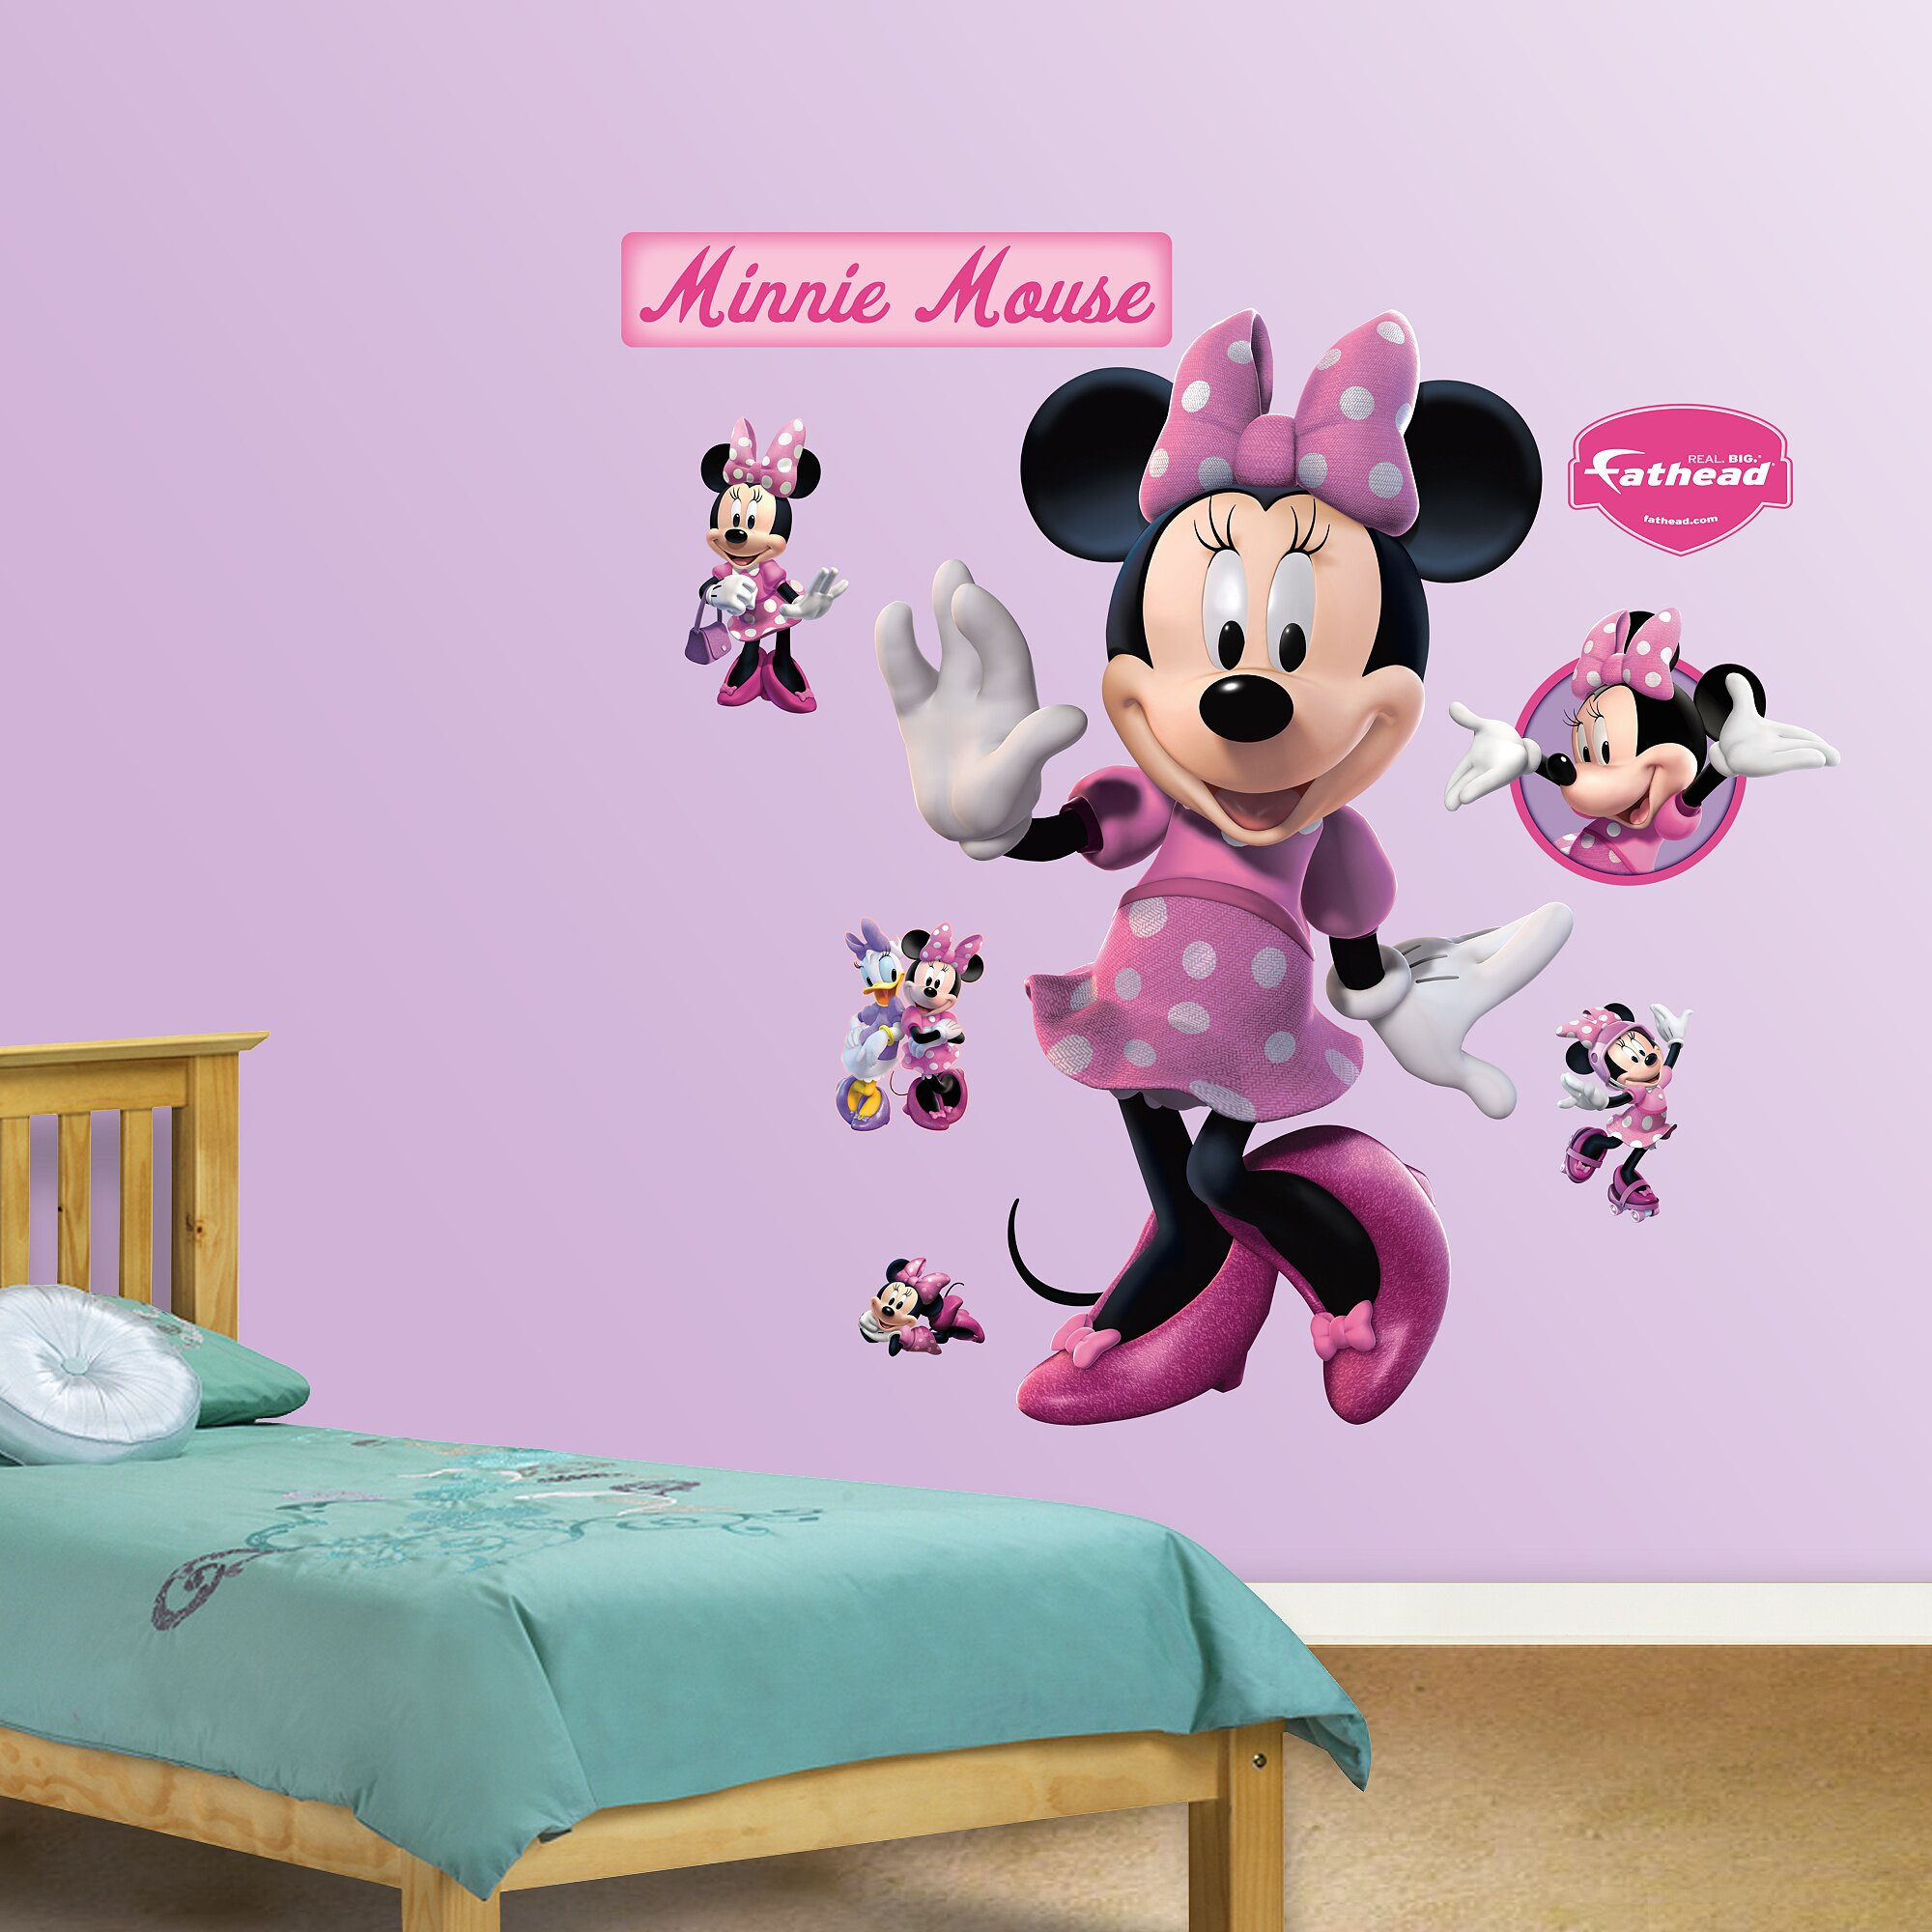 Fathead Disney Minnie Mouse Wall Decal amp Reviews Wayfair